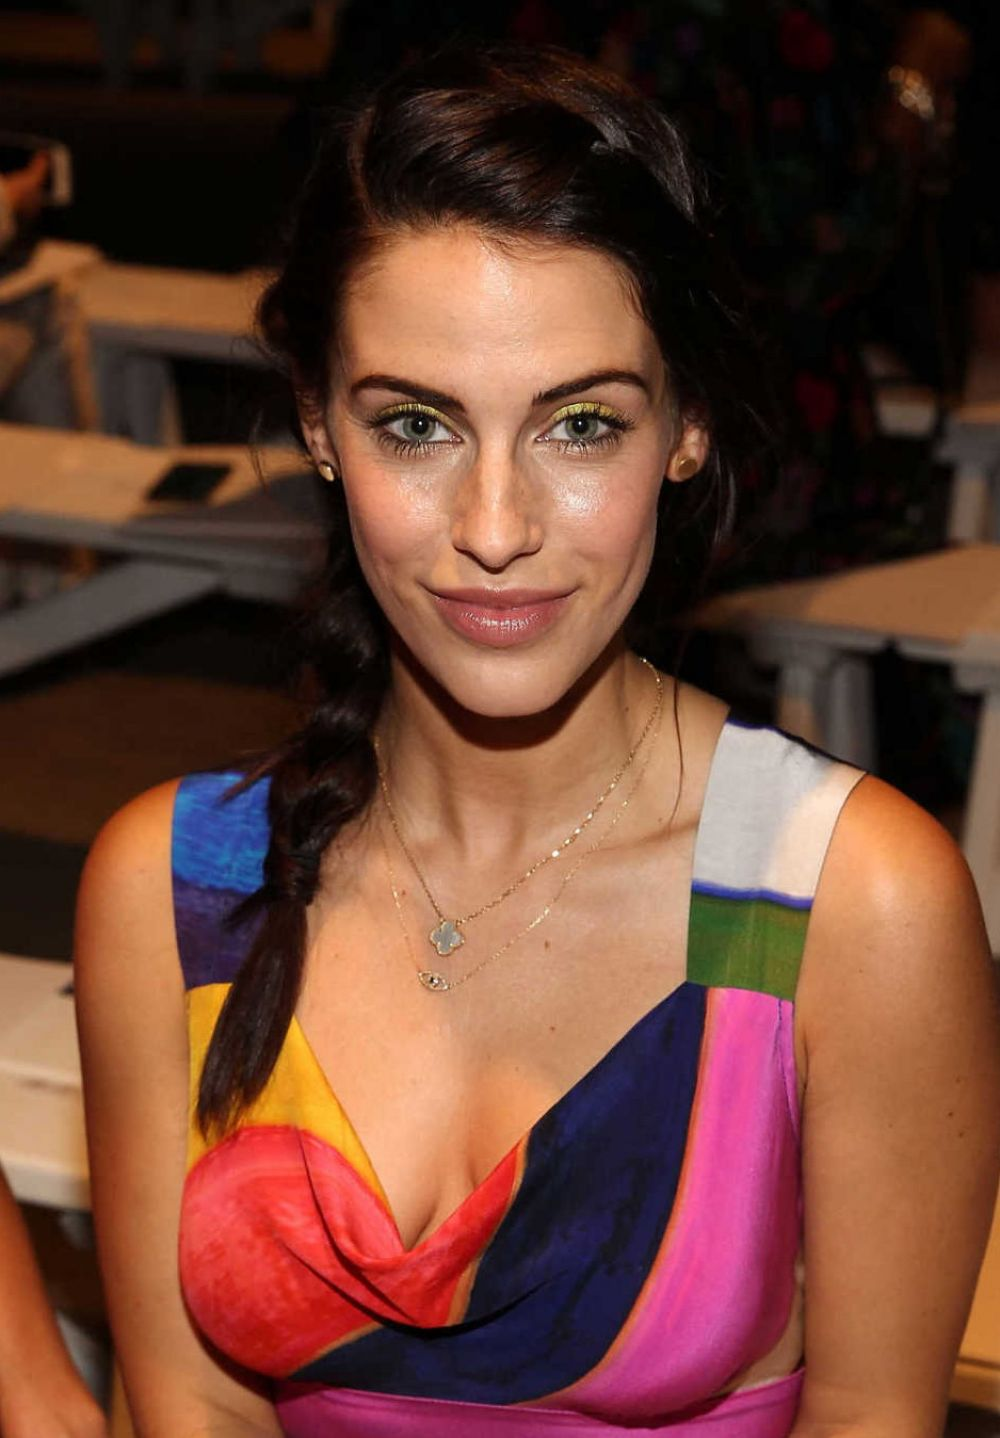 jessica lowndes blogjessica lowndes gif, jessica lowndes tumblr gif, jessica lowndes 2016, jessica lowndes фото, jessica lowndes listal, jessica lowndes source, jessica lowndes style, jessica lowndes dated, jessica lowndes makeup, jessica lowndes 90210, jessica lowndes saying goodbye, jessica lowndes png, jessica lowndes fool, jessica lowndes site, jessica lowndes wdw, jessica lowndes screencaps, jessica lowndes underneath the mask, jessica lowndes news, jessica lowndes blog, jessica lowndes interview